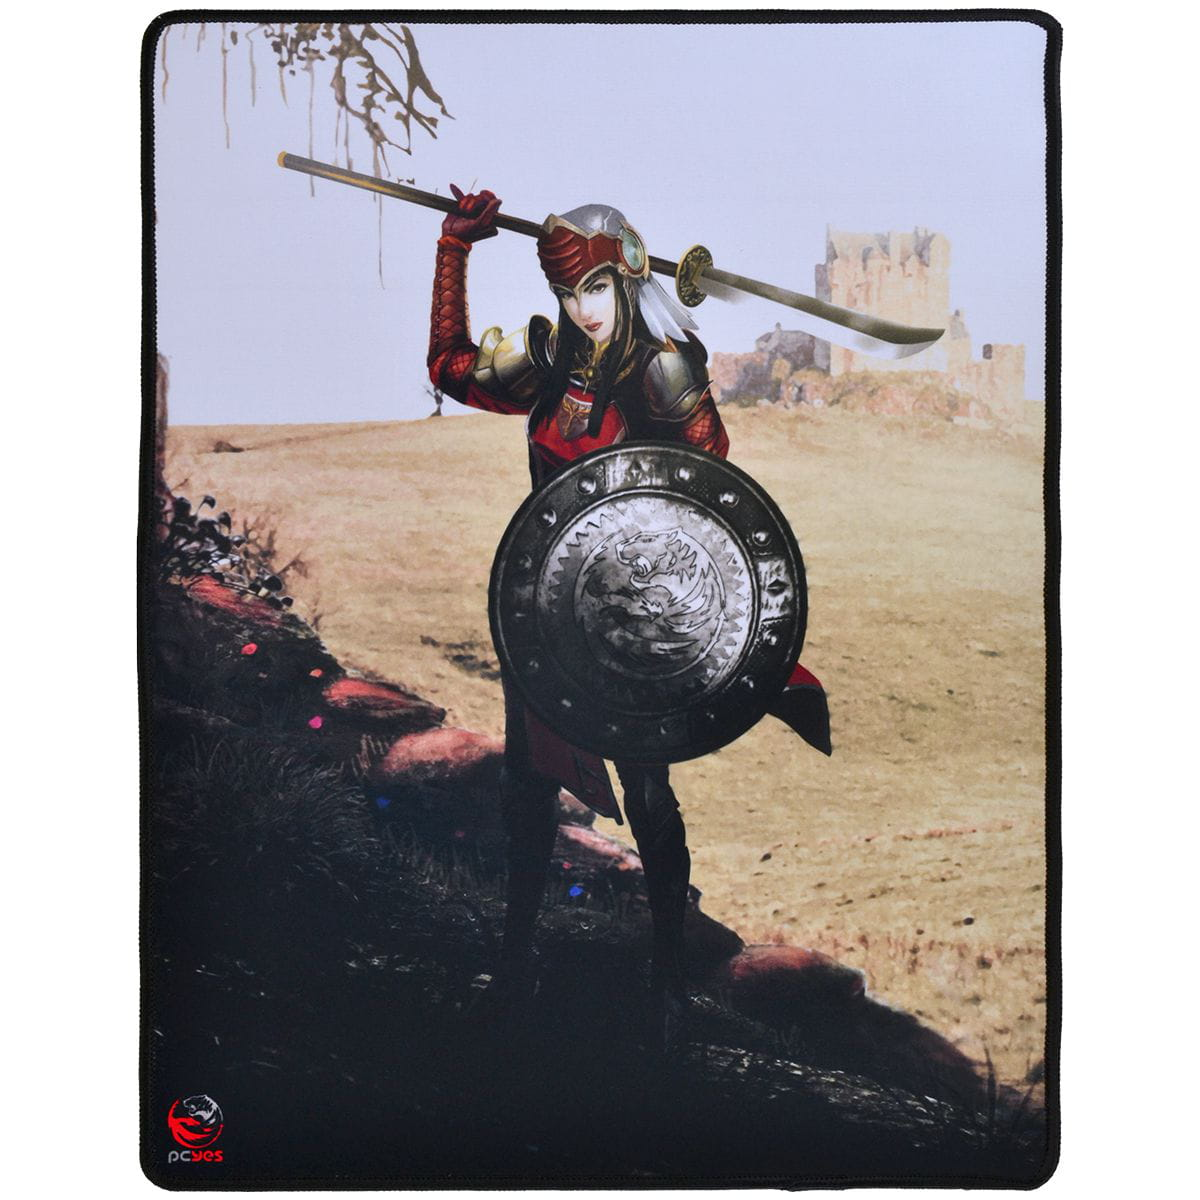 Mouse Pad Pcyes RPG Valkyrie - 400X500MM - RV40X50